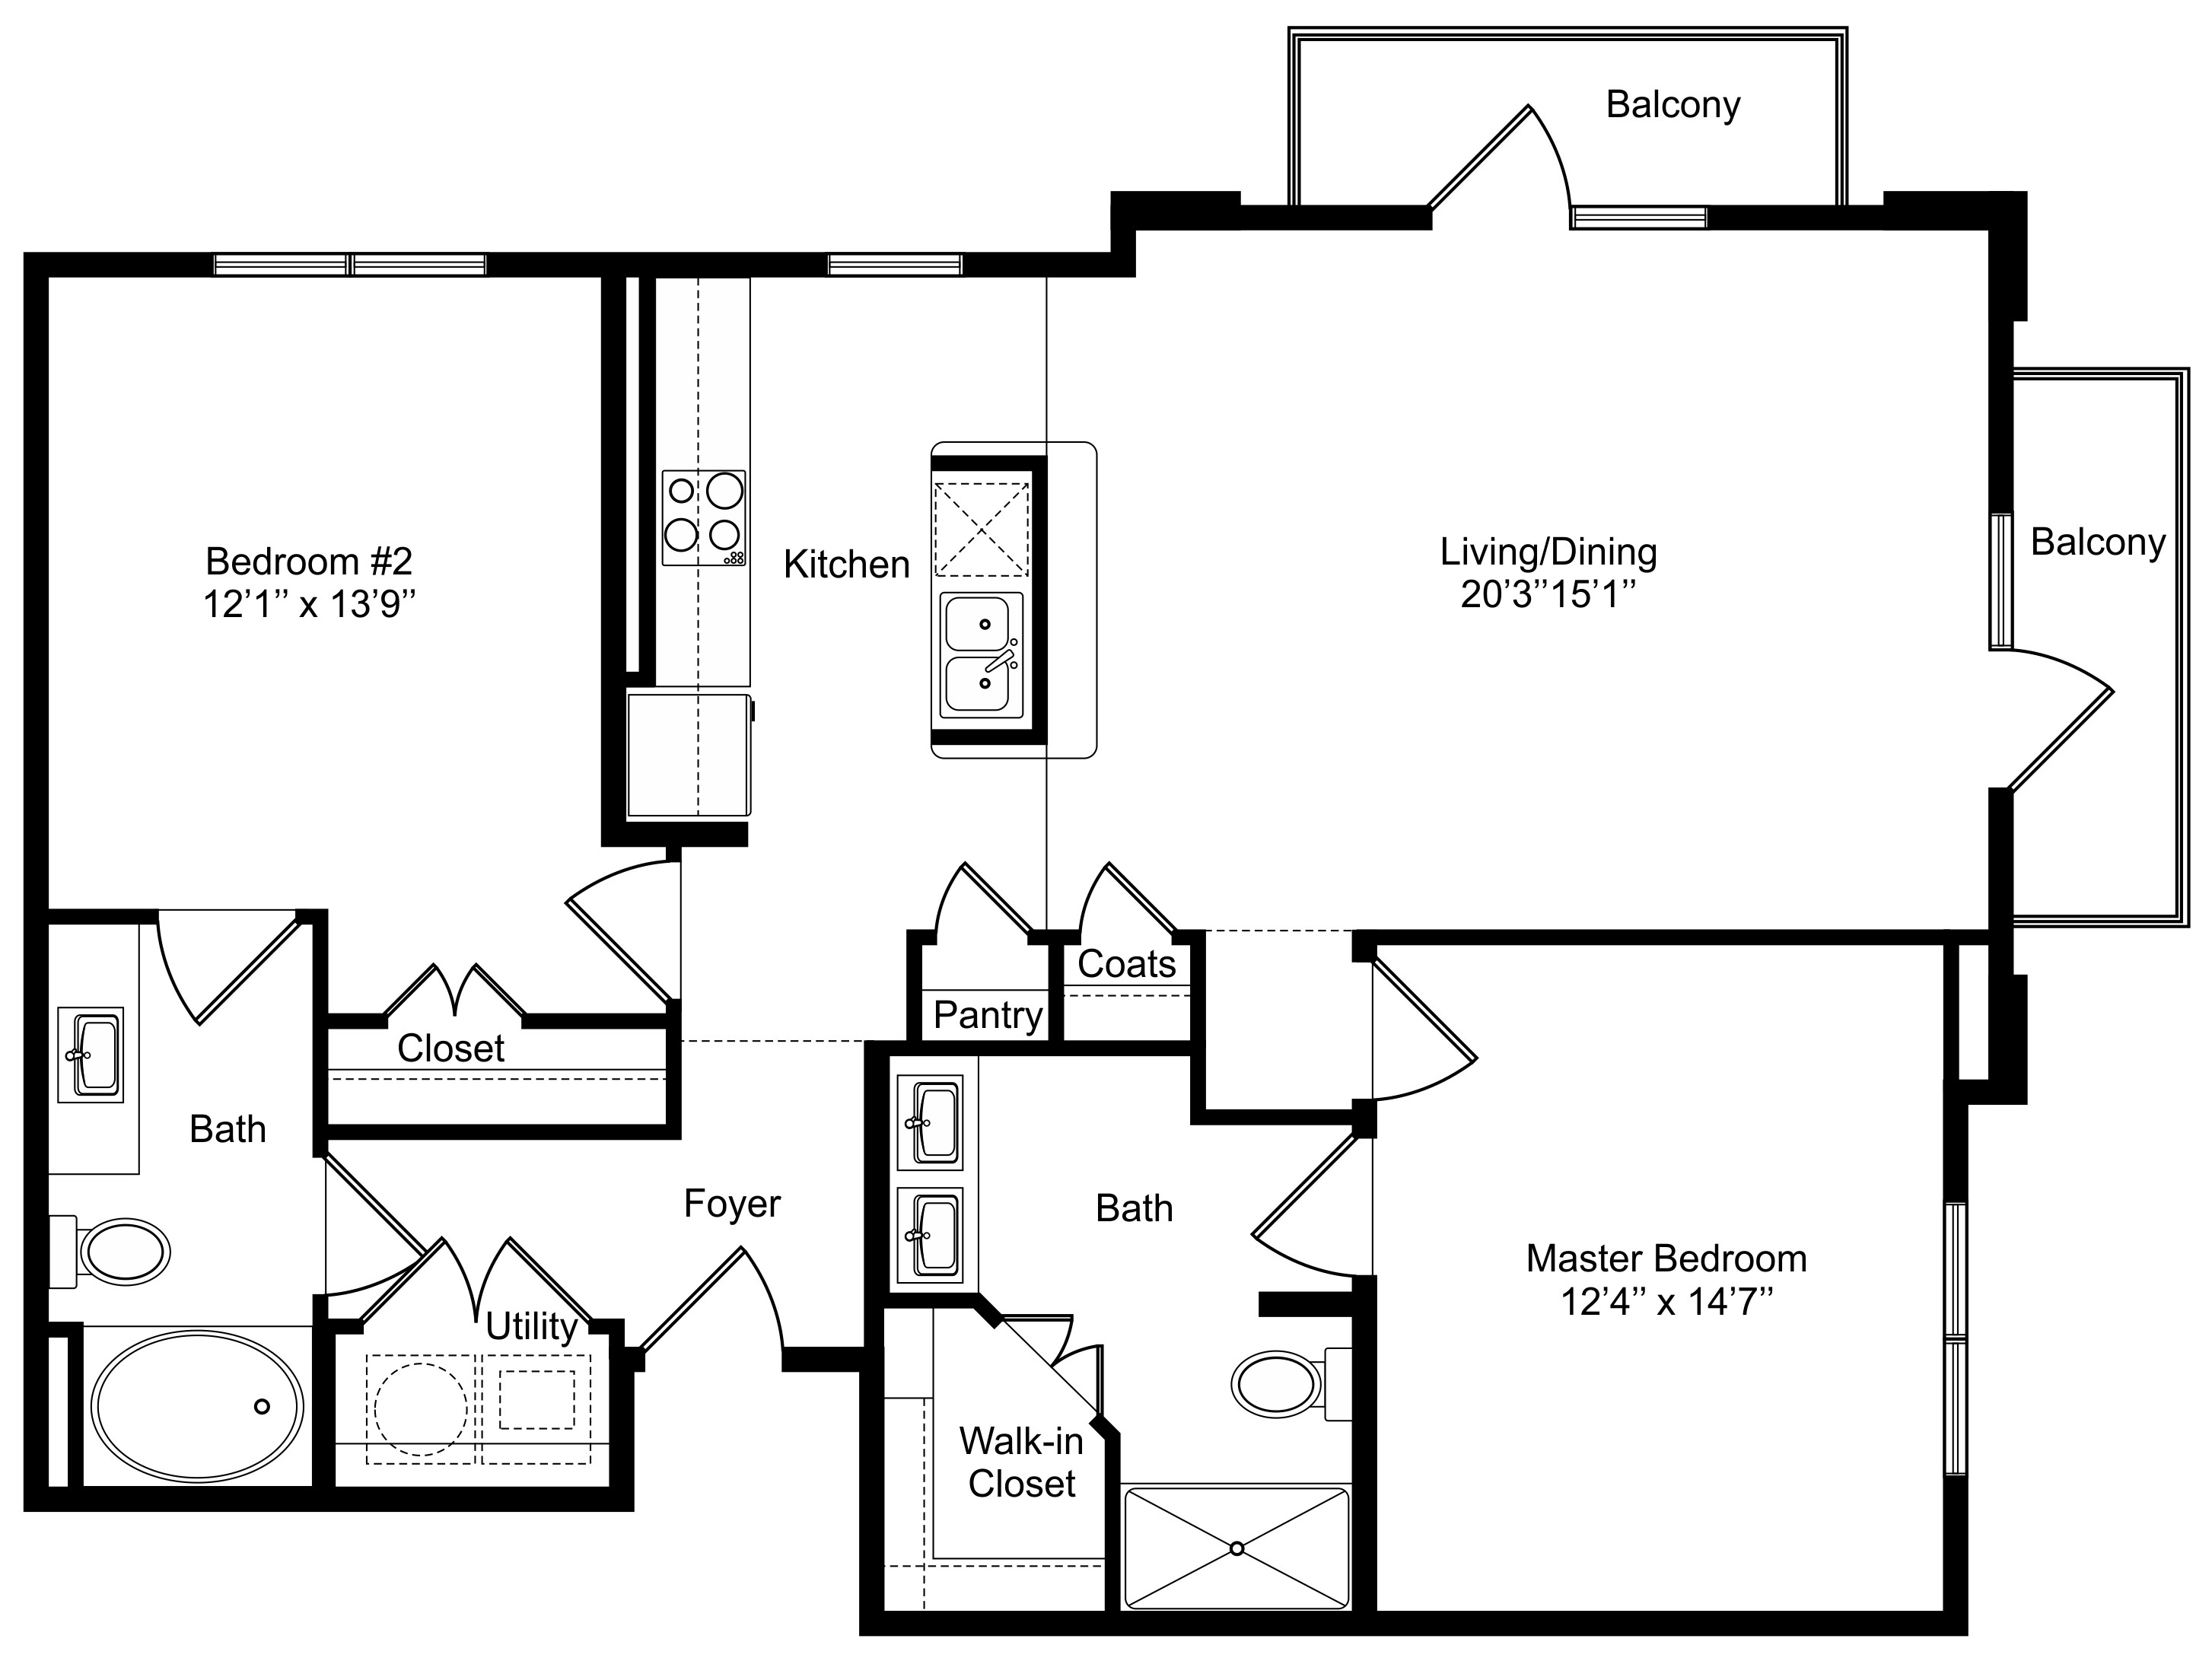 Floorplan - B2 - Tower image